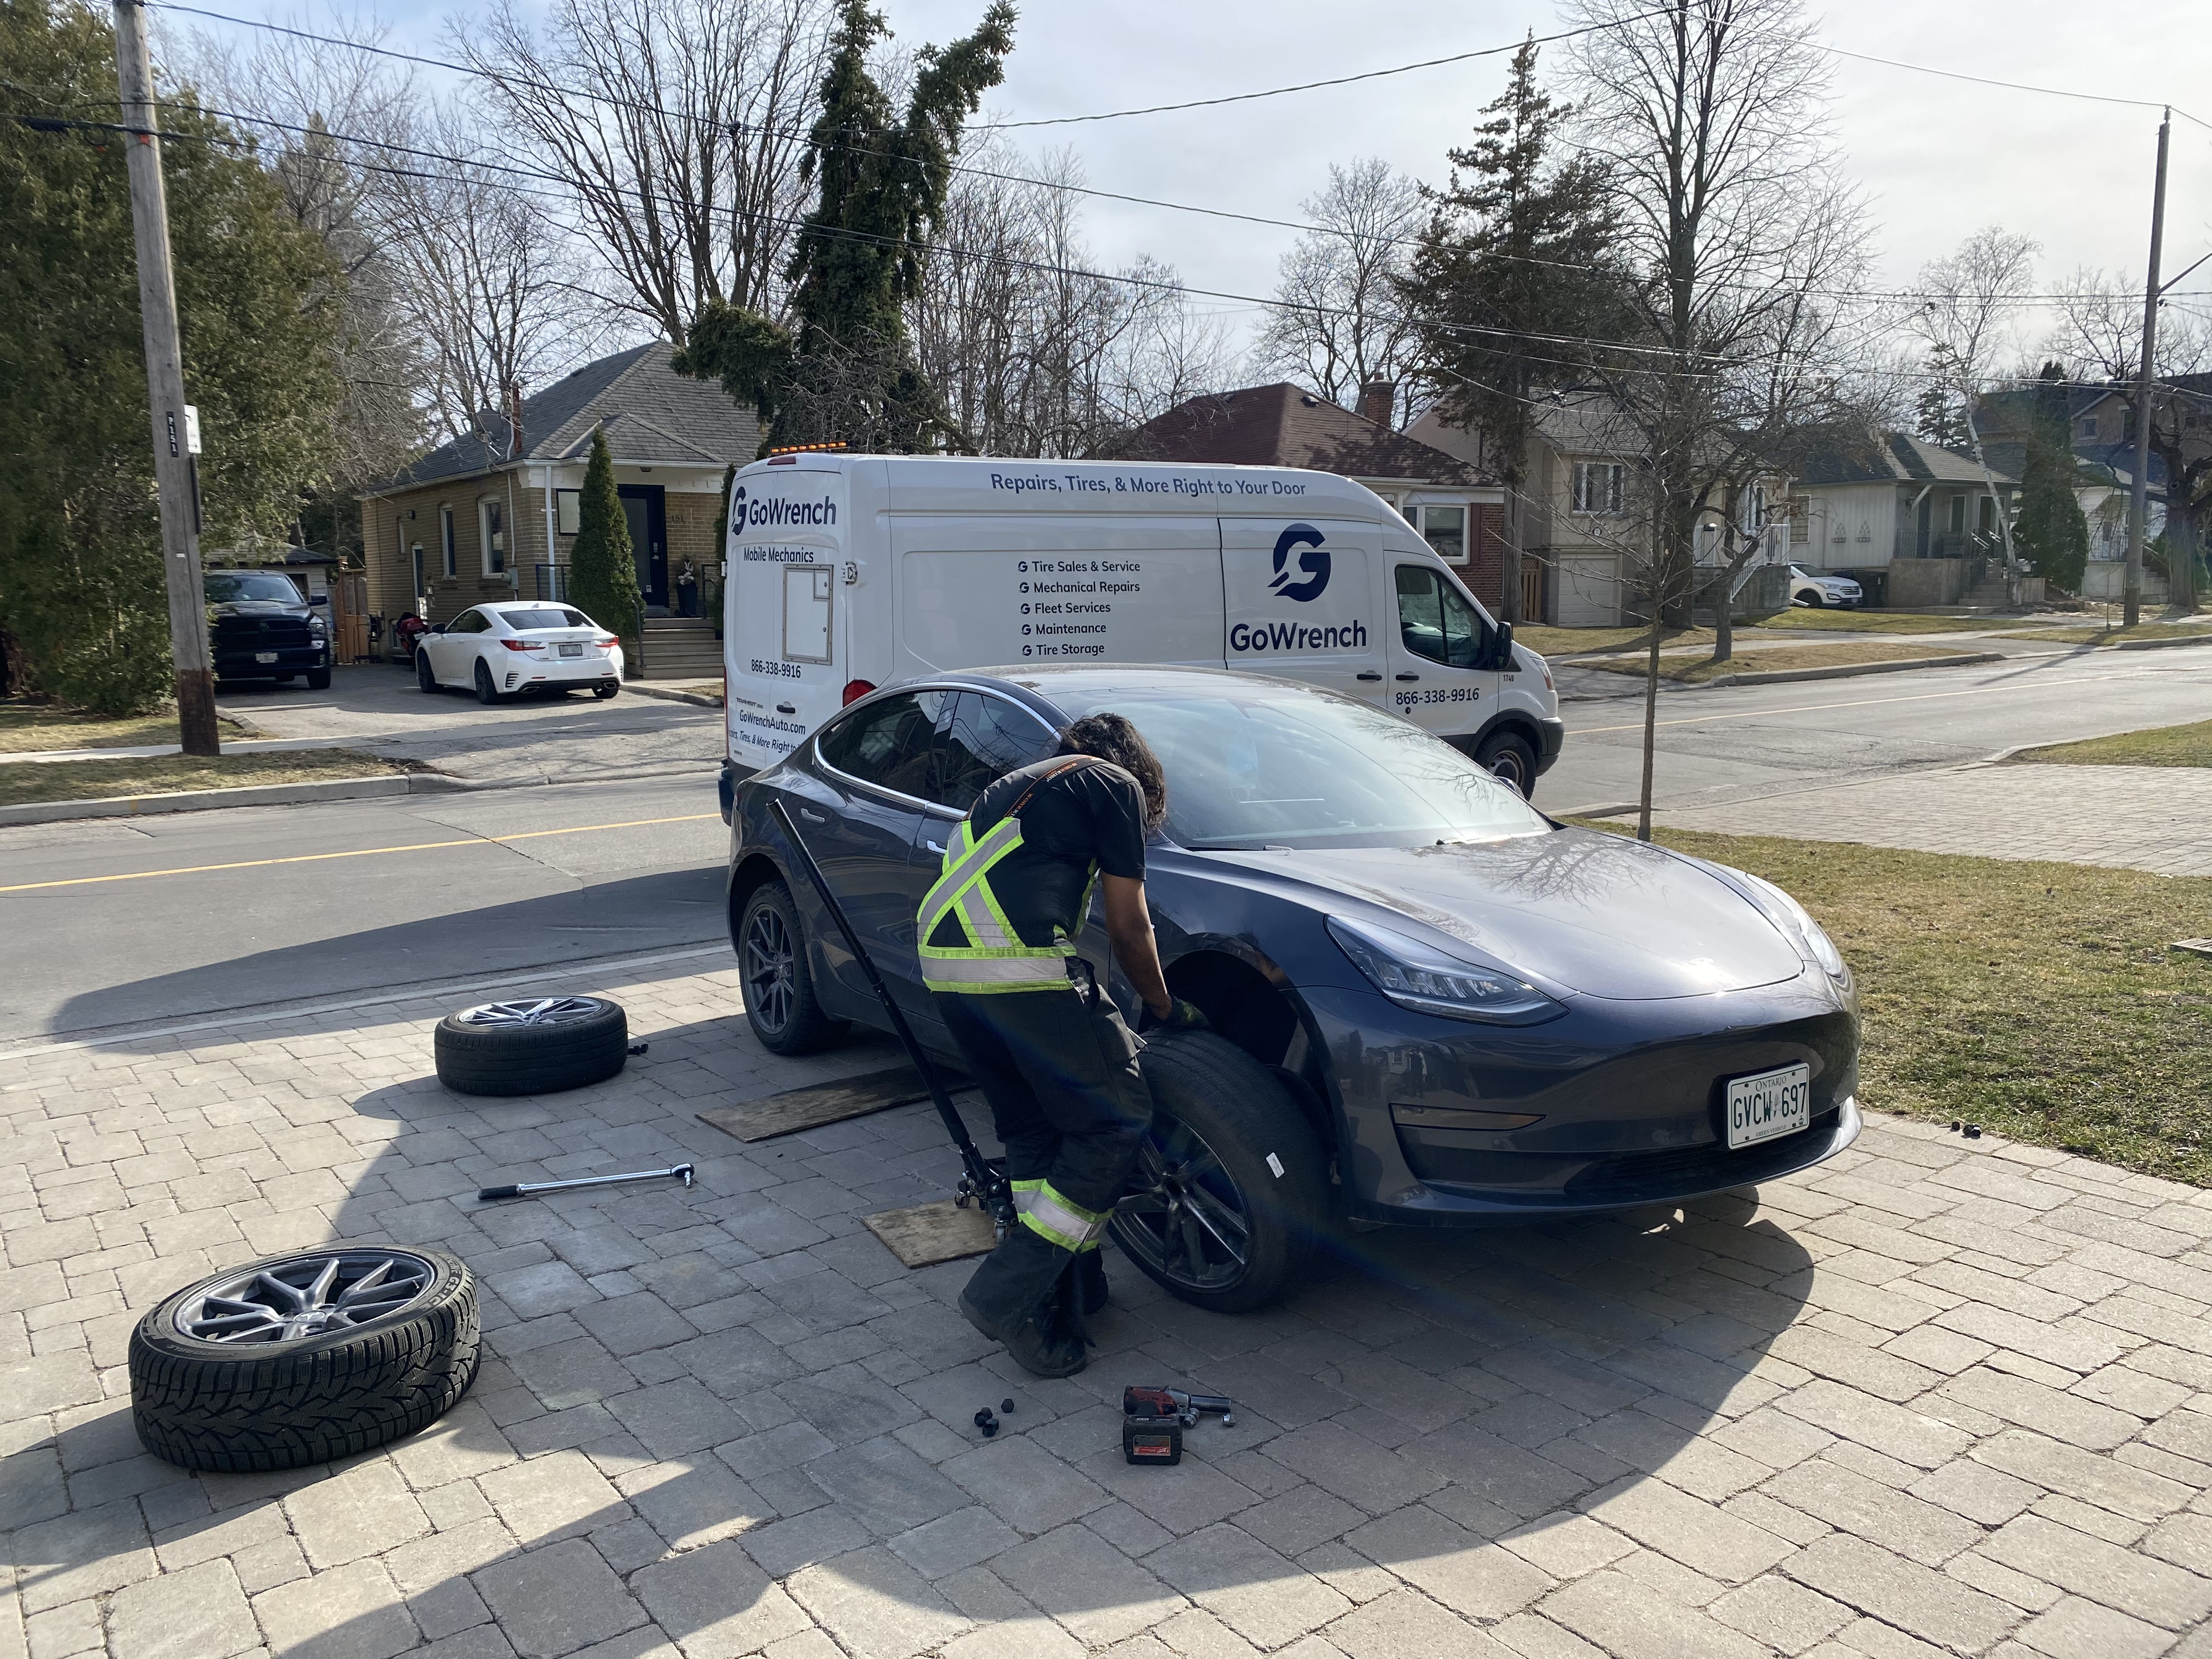 Tire Swap for a Tesla - done by GoWrench Auto